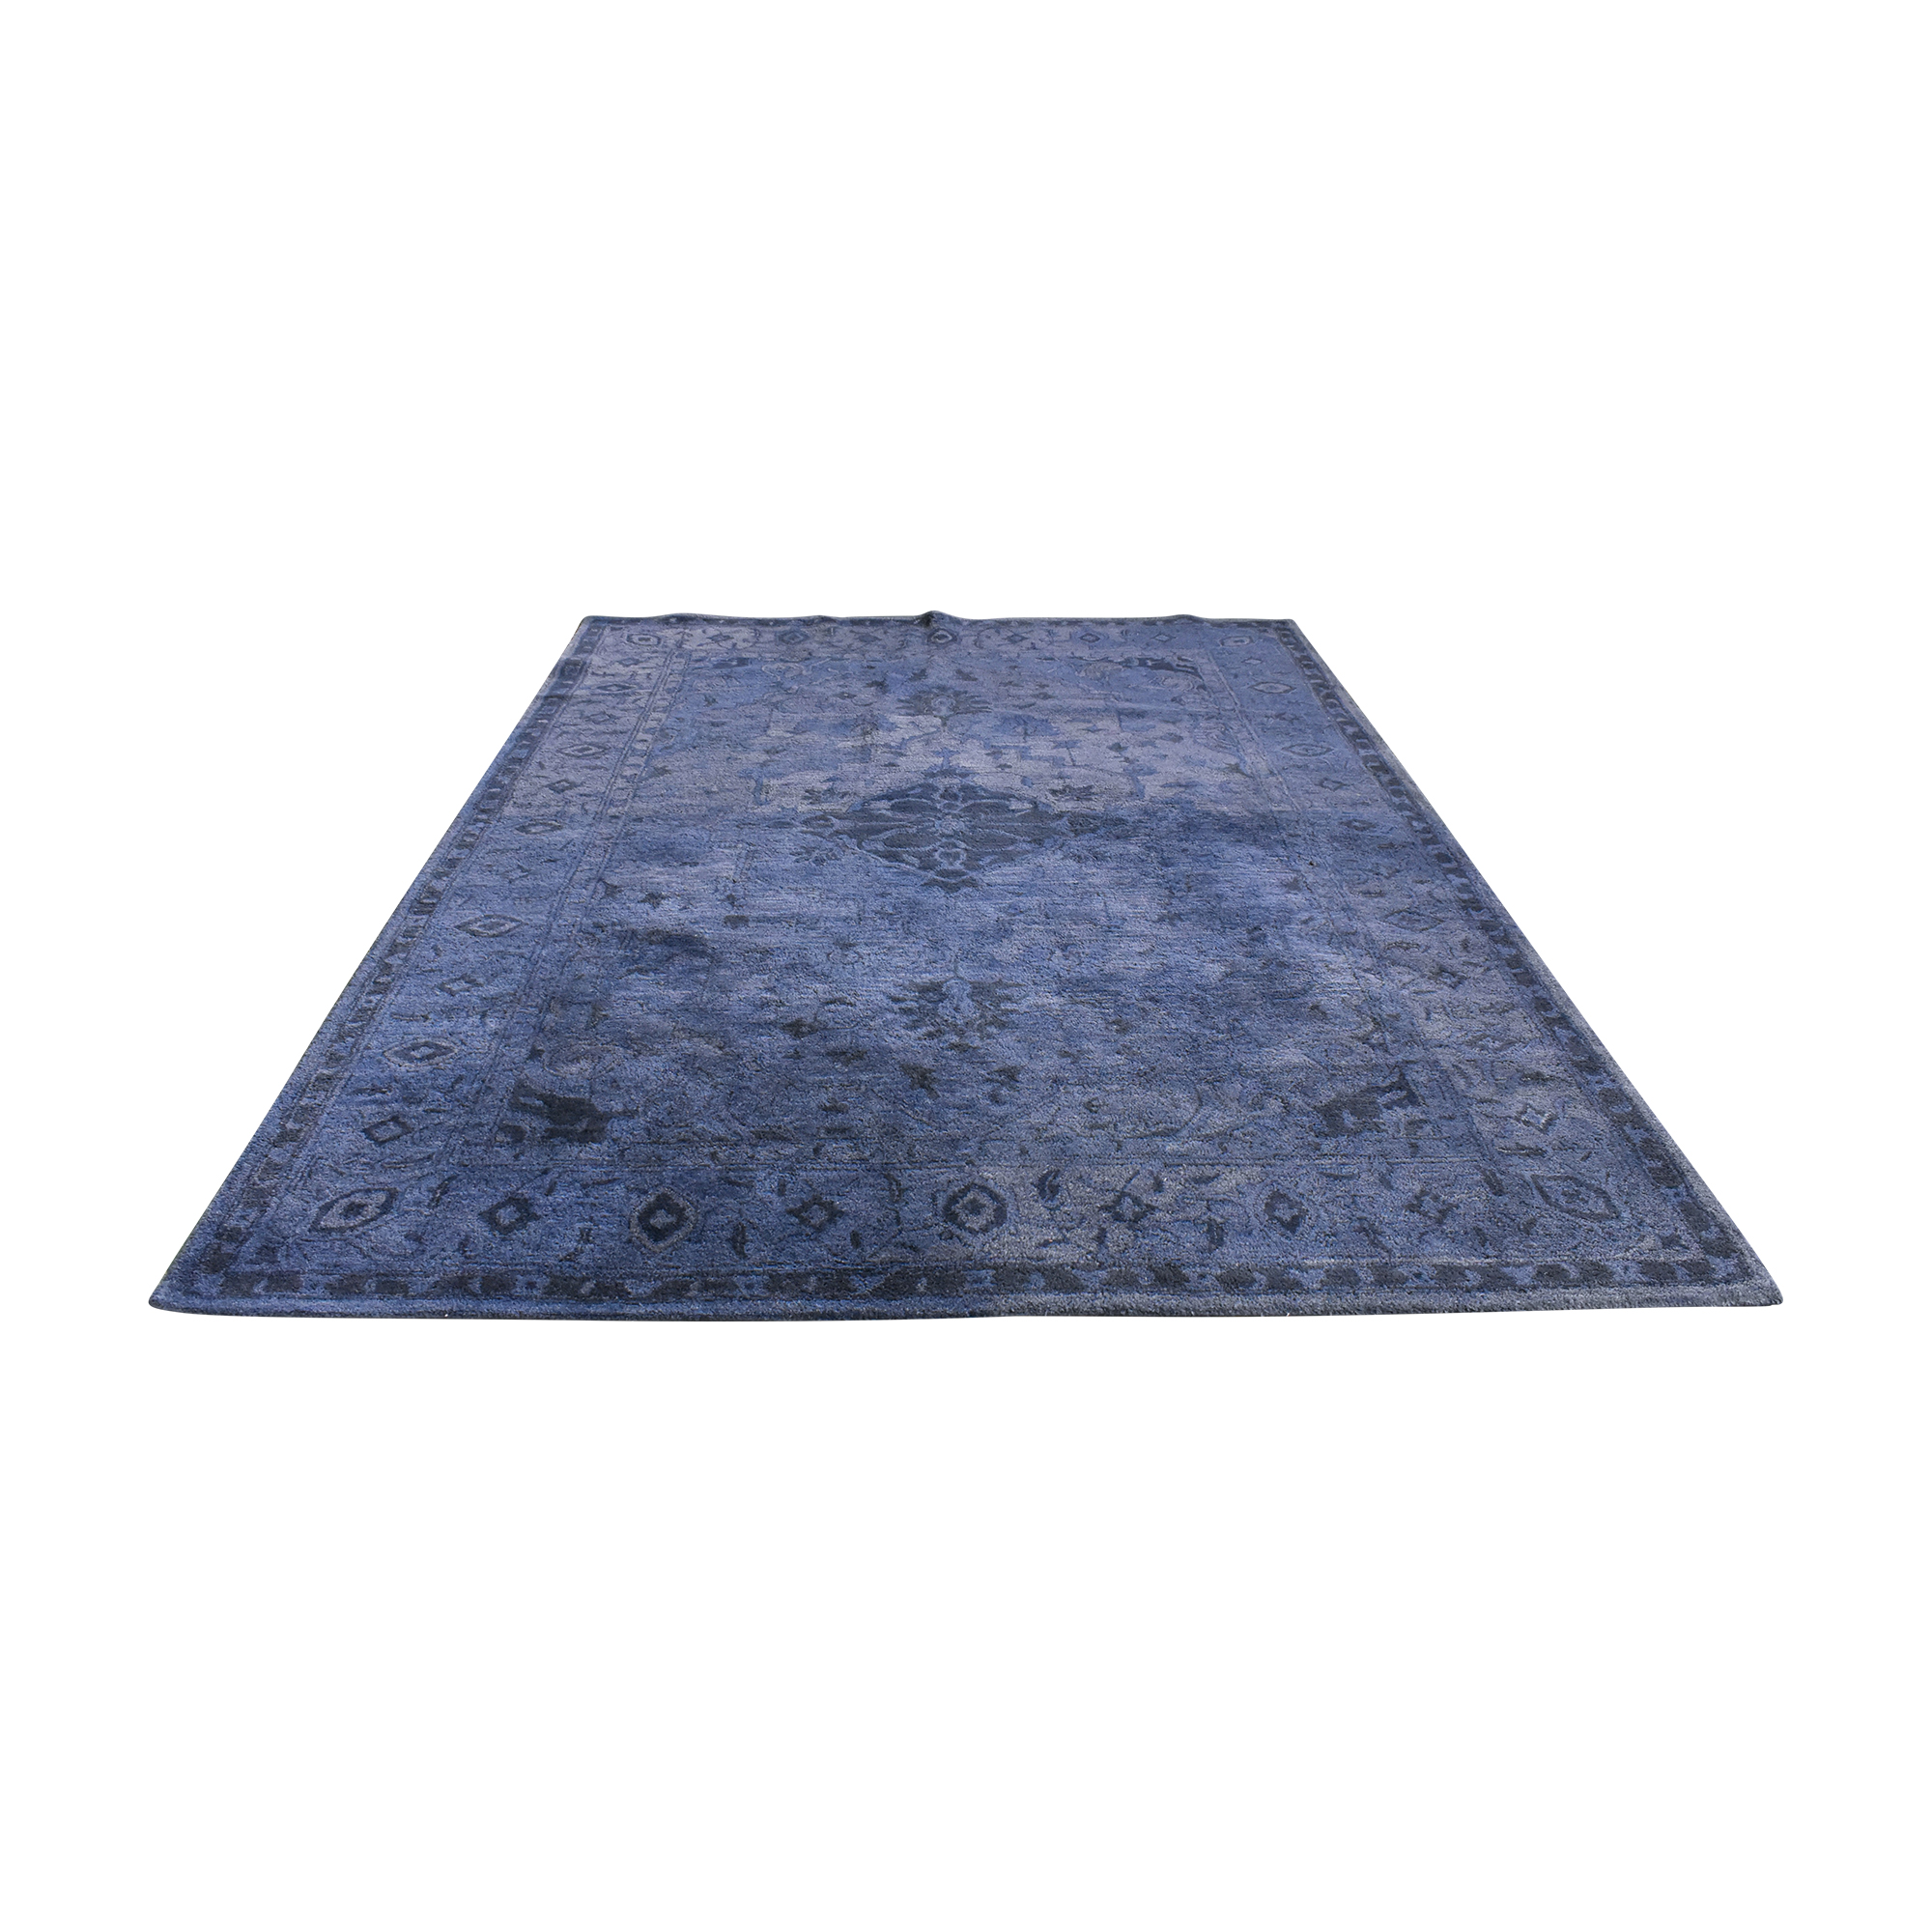 Home Decorators Collection Home Decorators Collection Area Rug